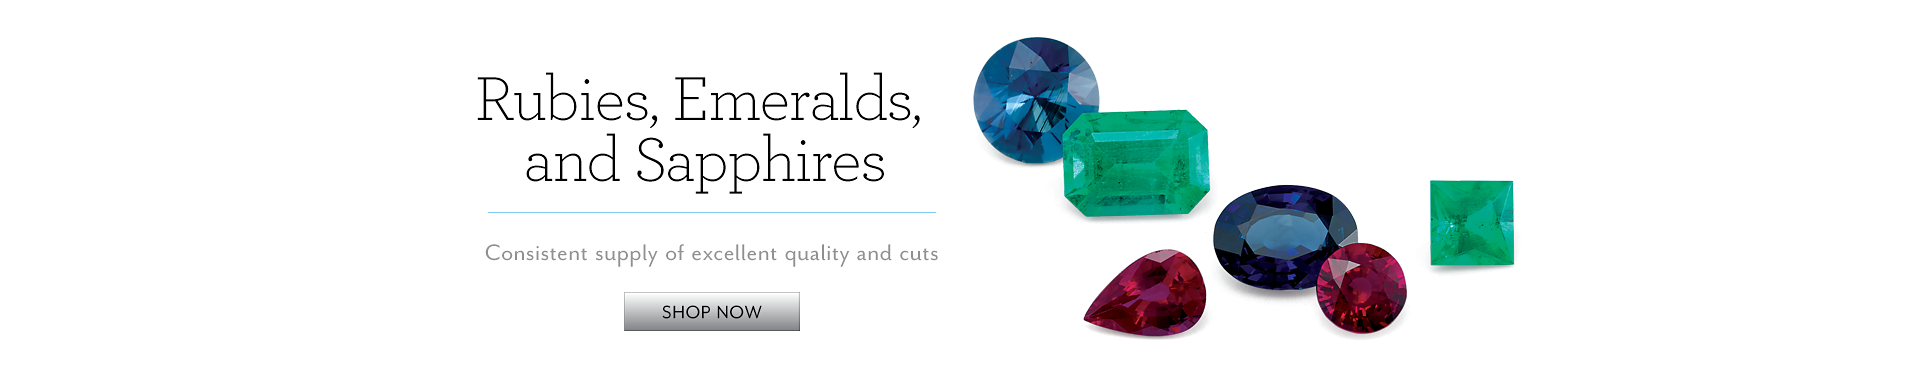 Rubies,Emeralds, and Sapphires